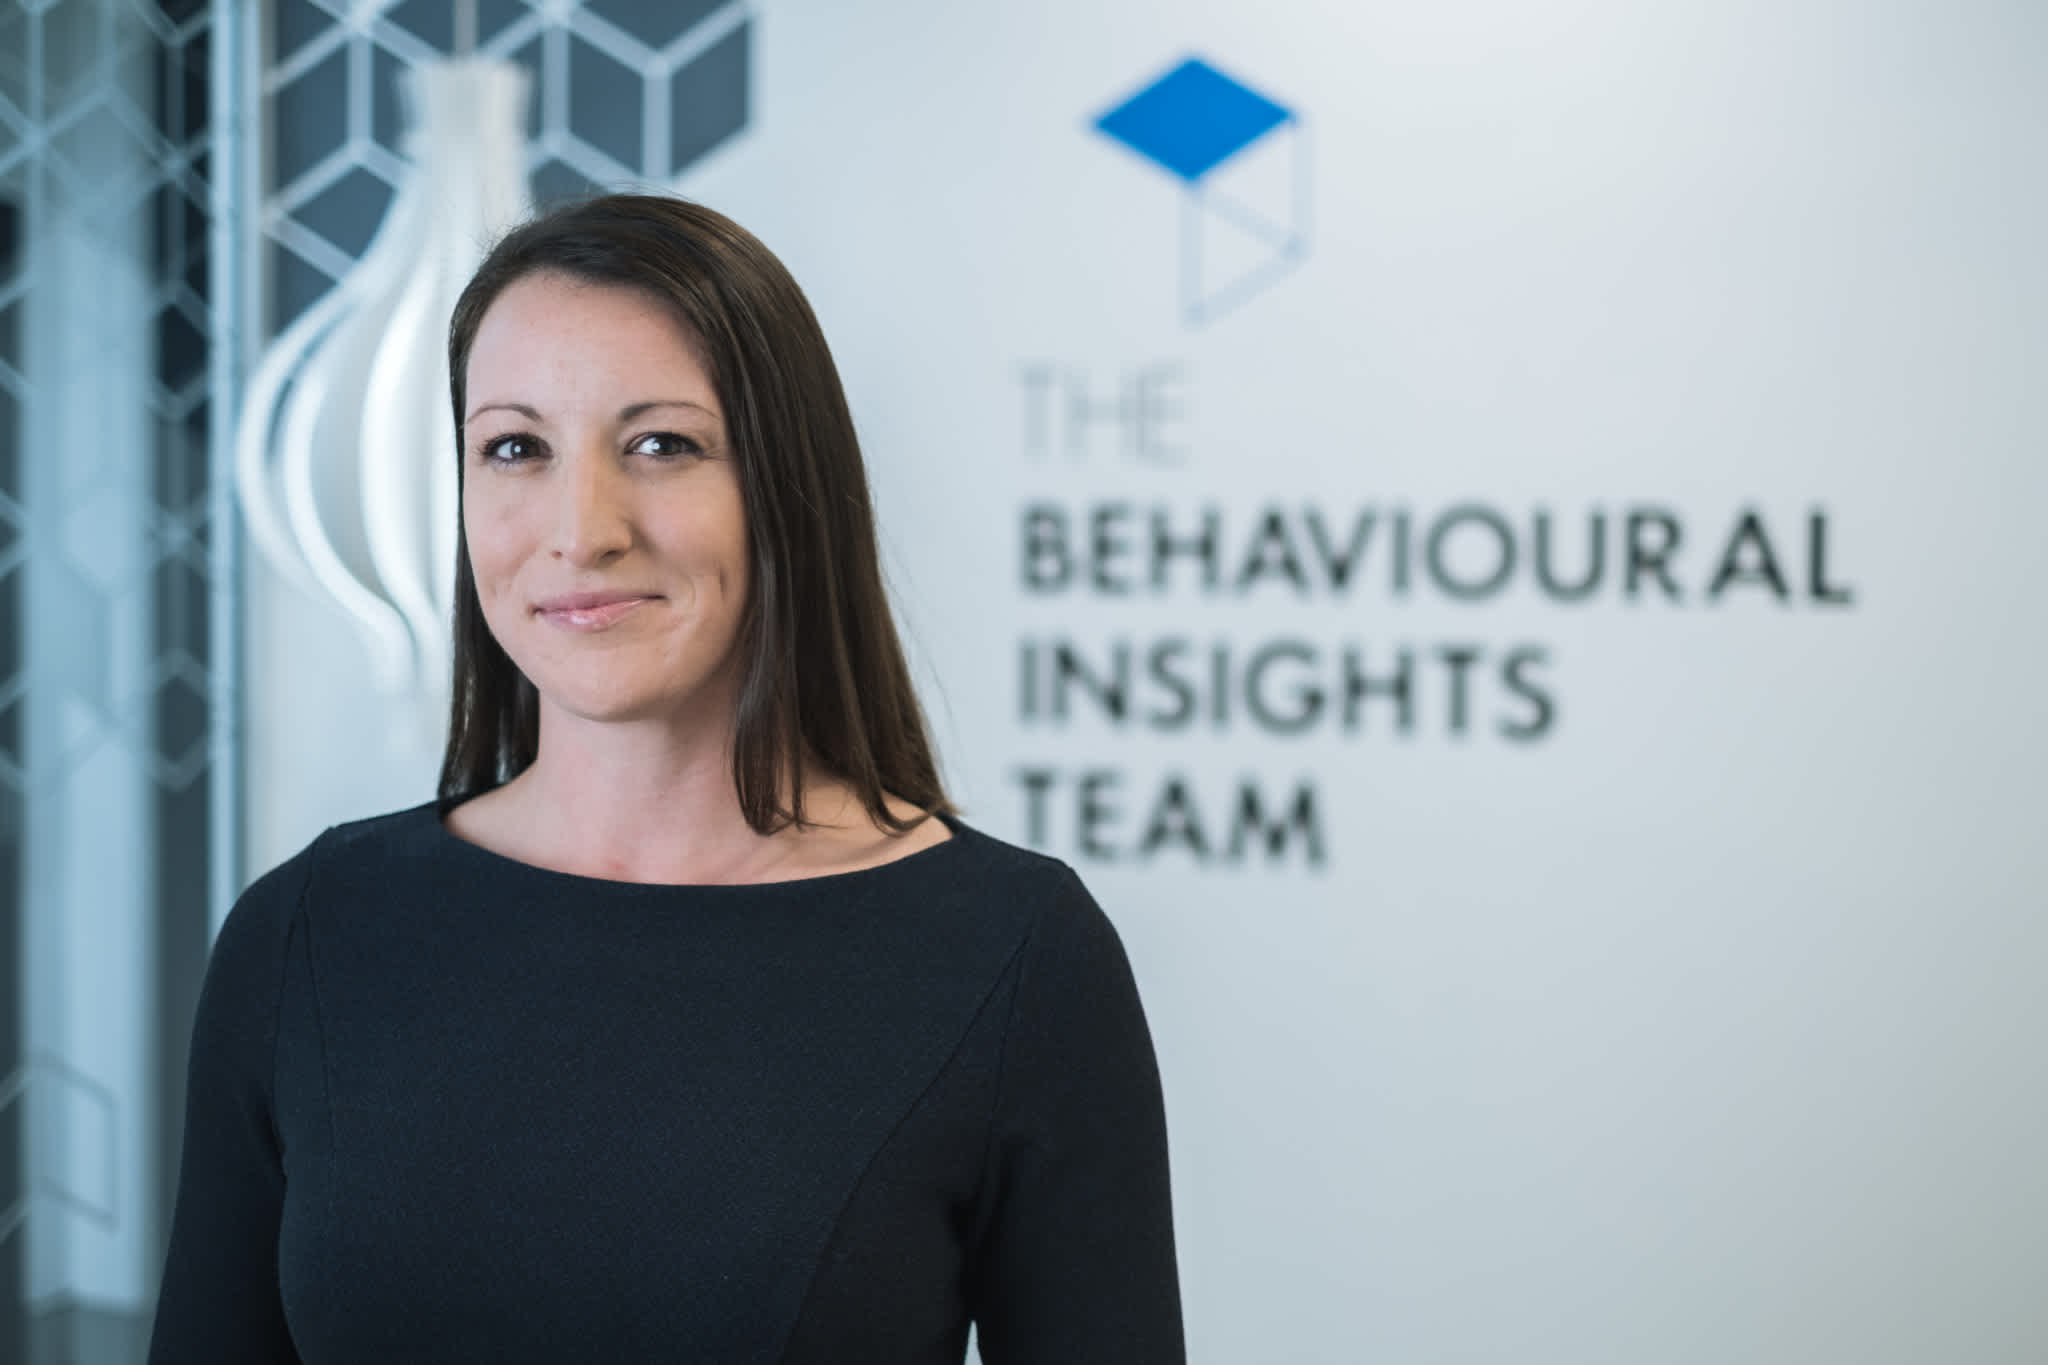 The Behavioural Insight team